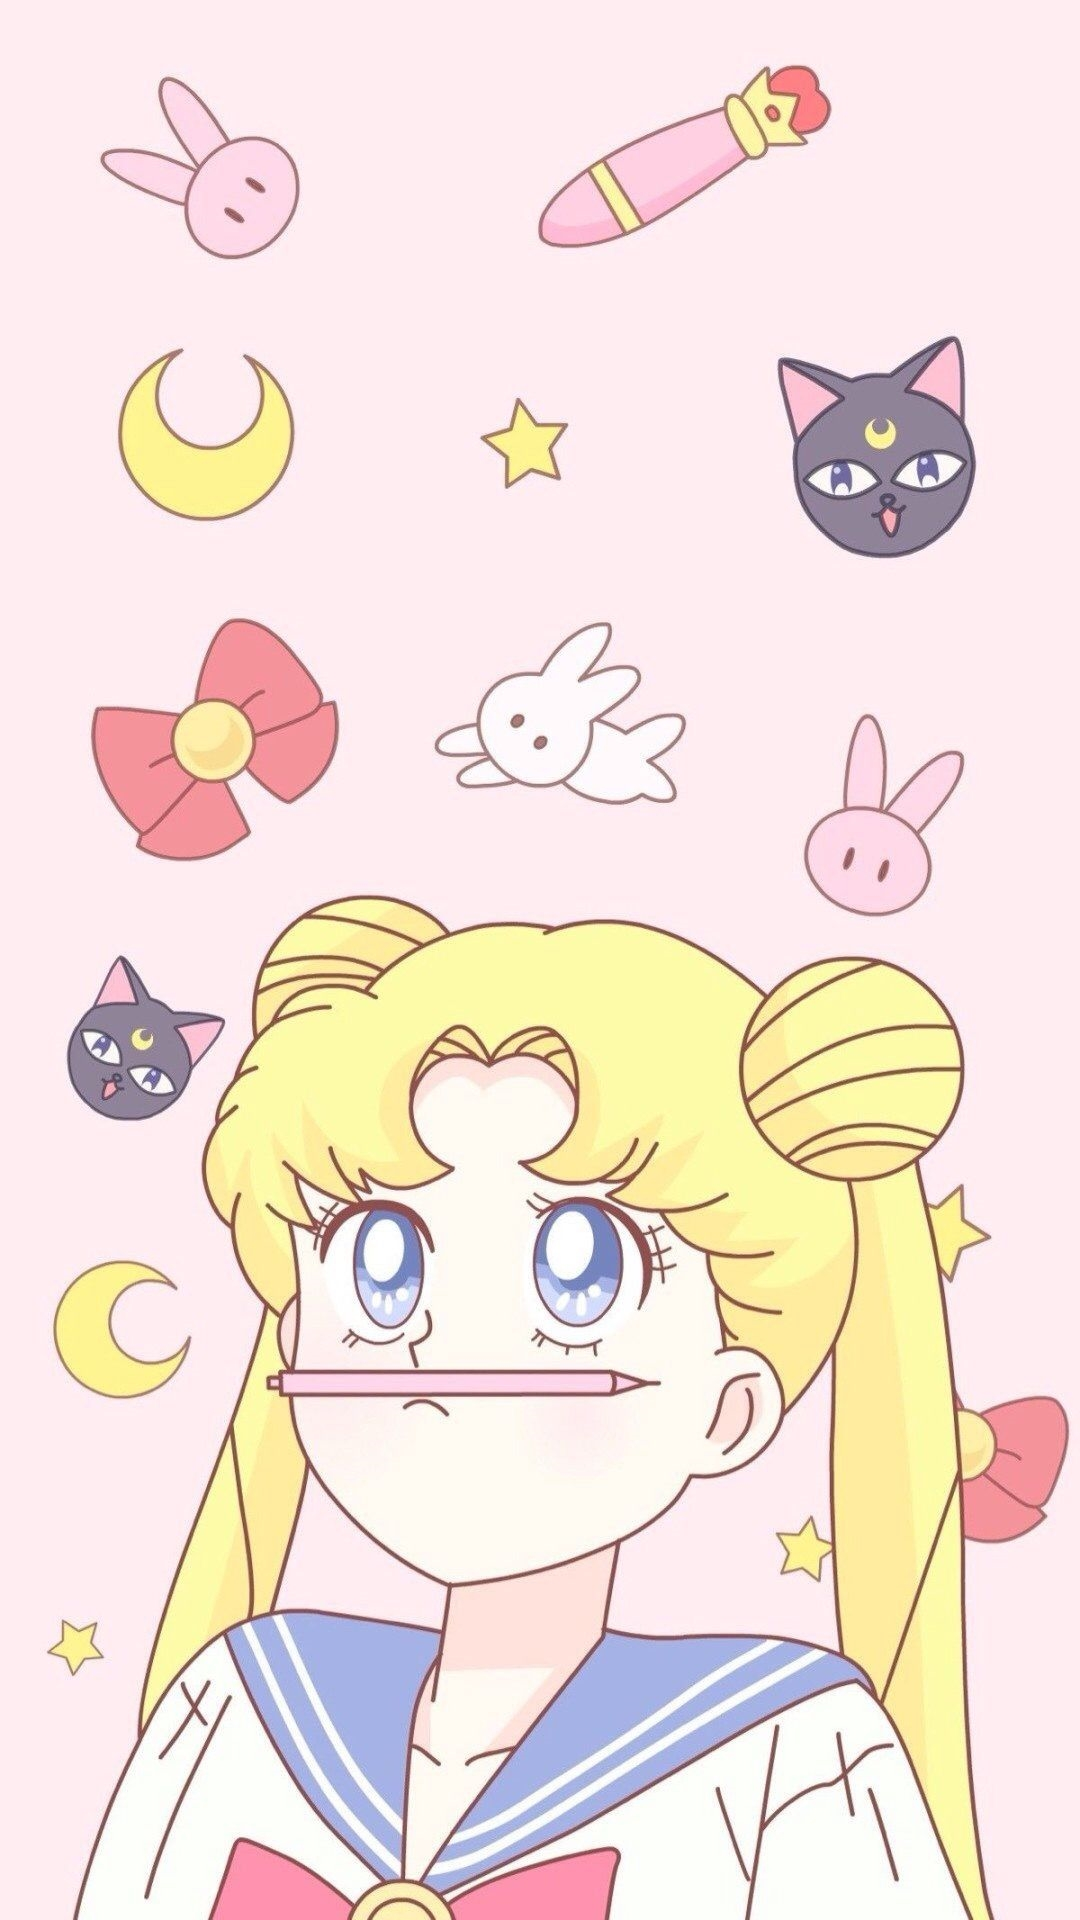 Sailor Moon screensaver wallpaper